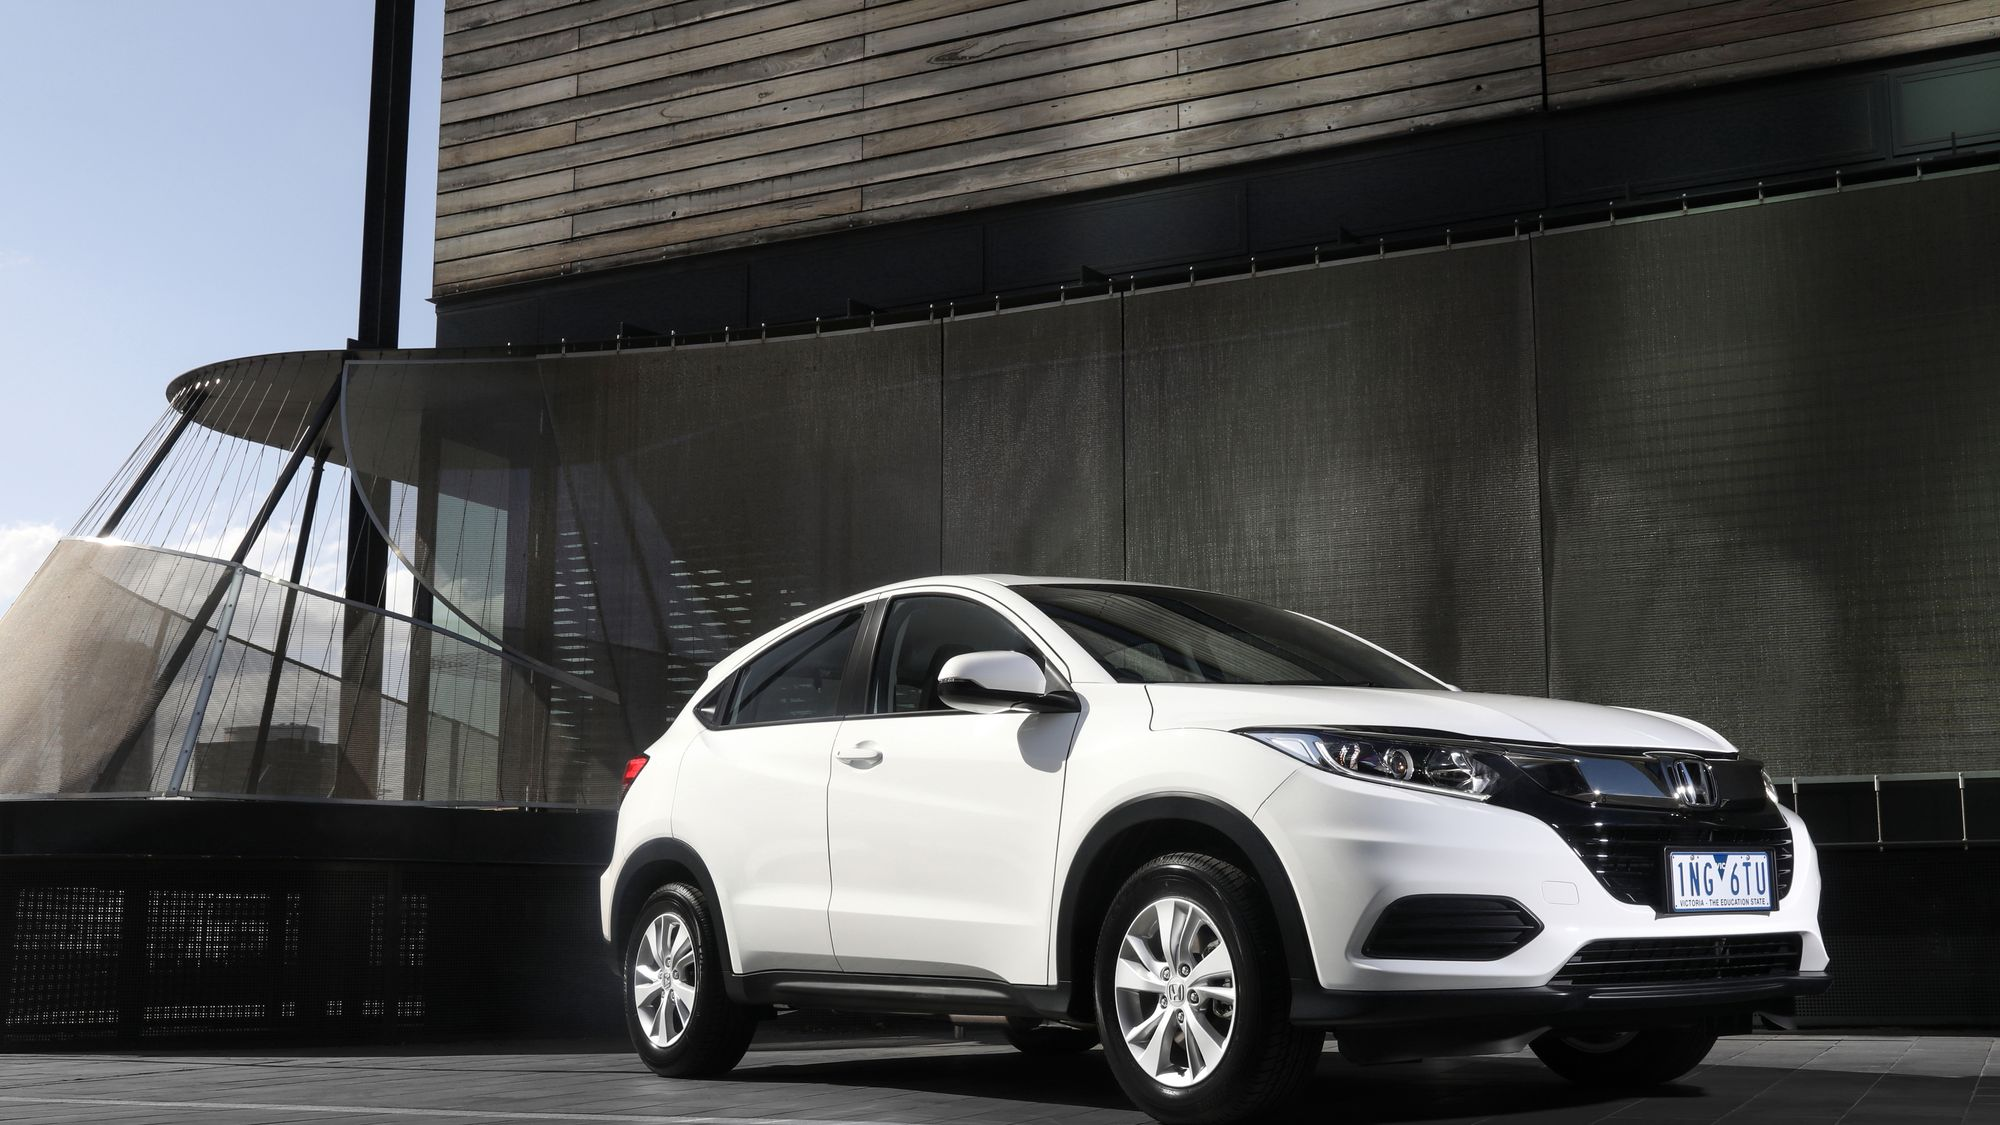 What Small SUV Should I Buy?